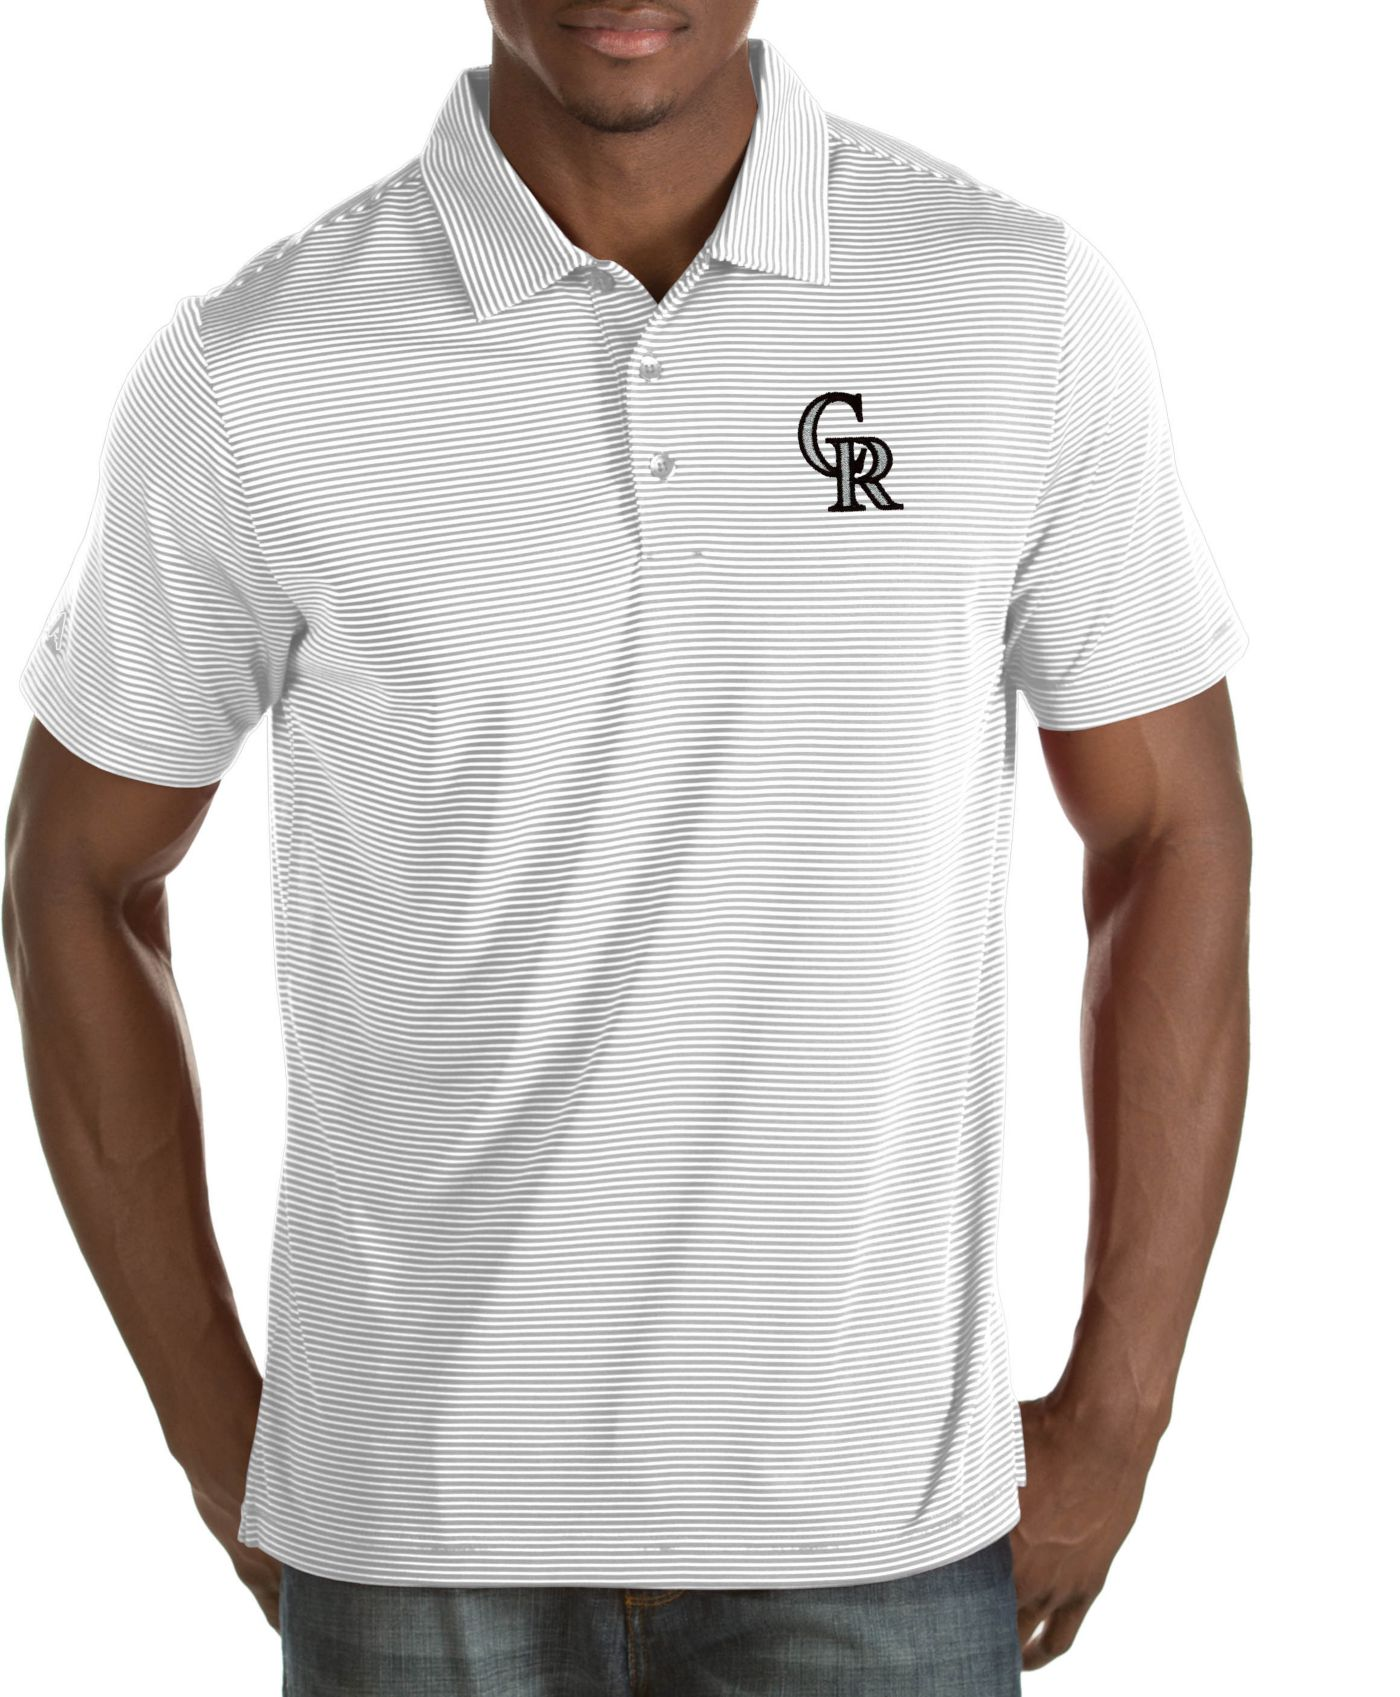 Antigua Men's Colorado Rockies Quest White Performance Polo